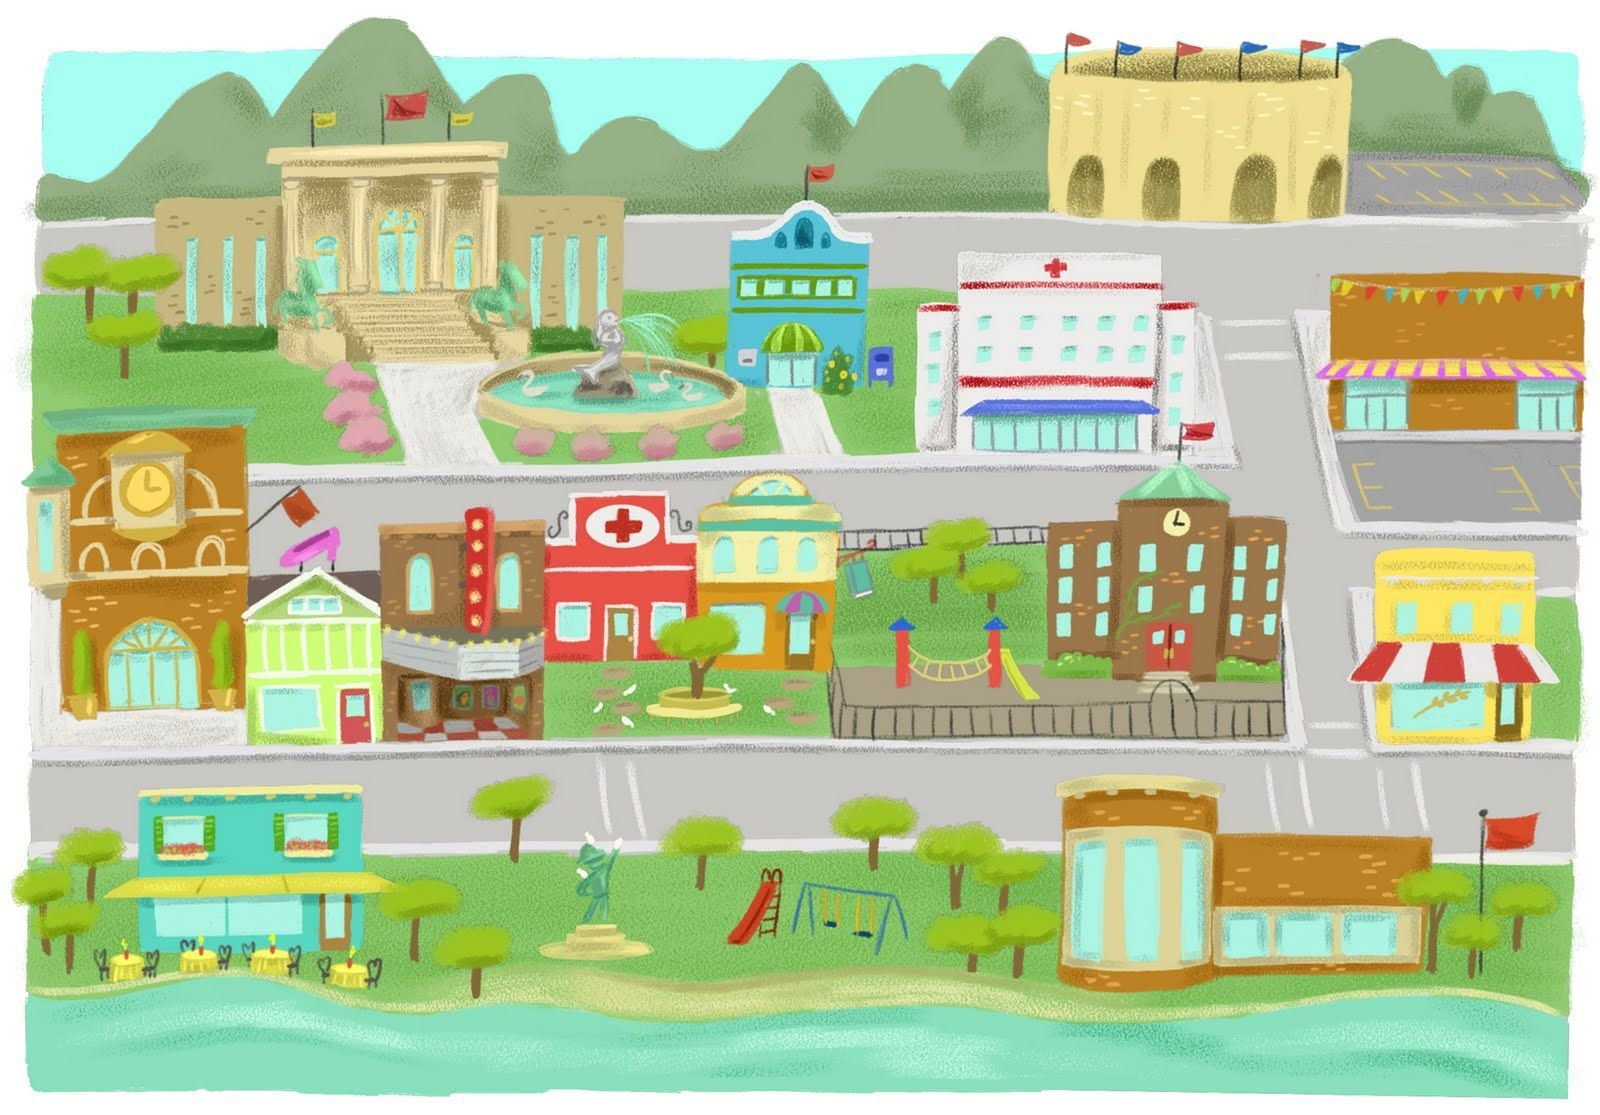 Neighborhood map clipart 6 » Clipart Portal.